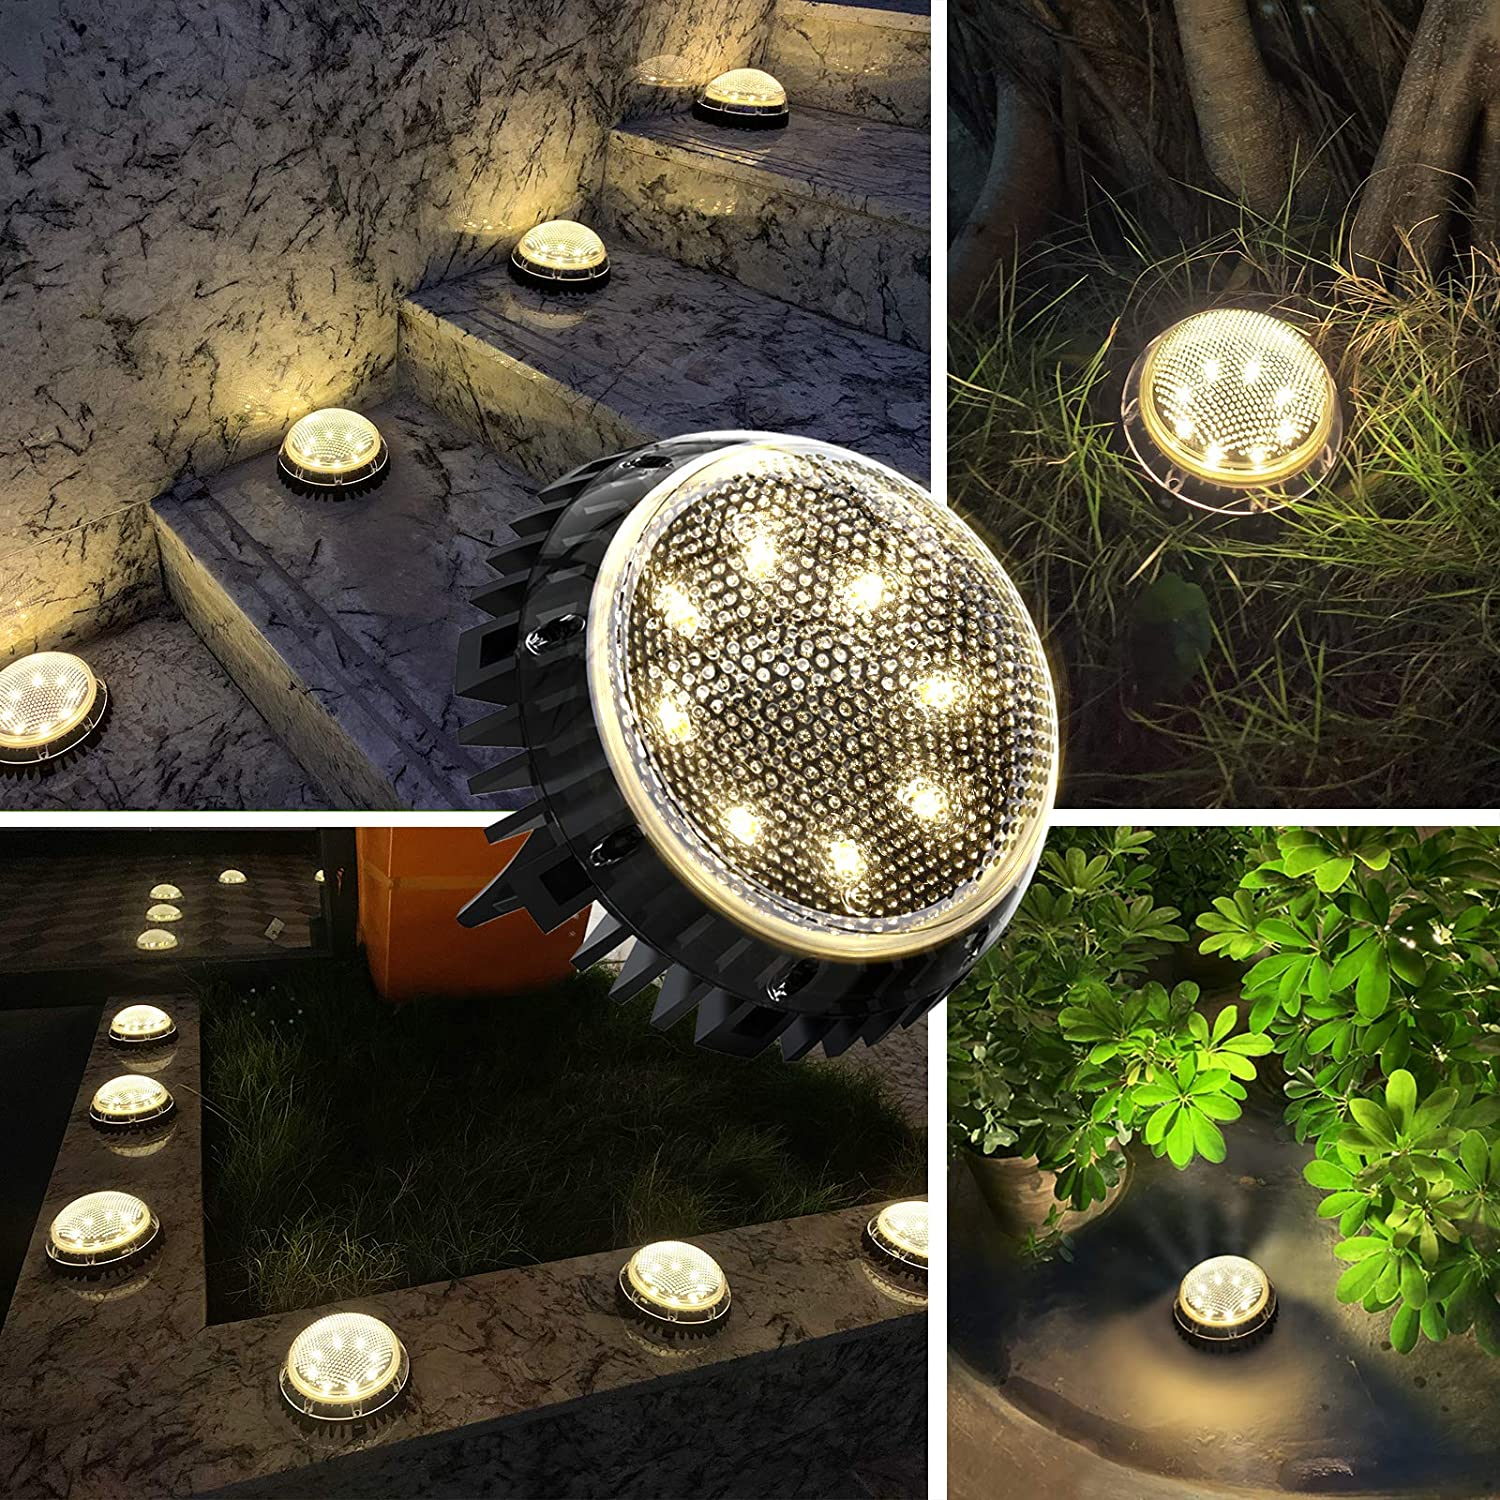 Jack & Rose Solar Ground Lights Outdoor Pathway Lights Fairy Garden Lights Solar Powered IP67 Waterproof 8 LED Disk Light for Yard Deck Lawn Patio Driveway (Warm Light, 4 Pack£